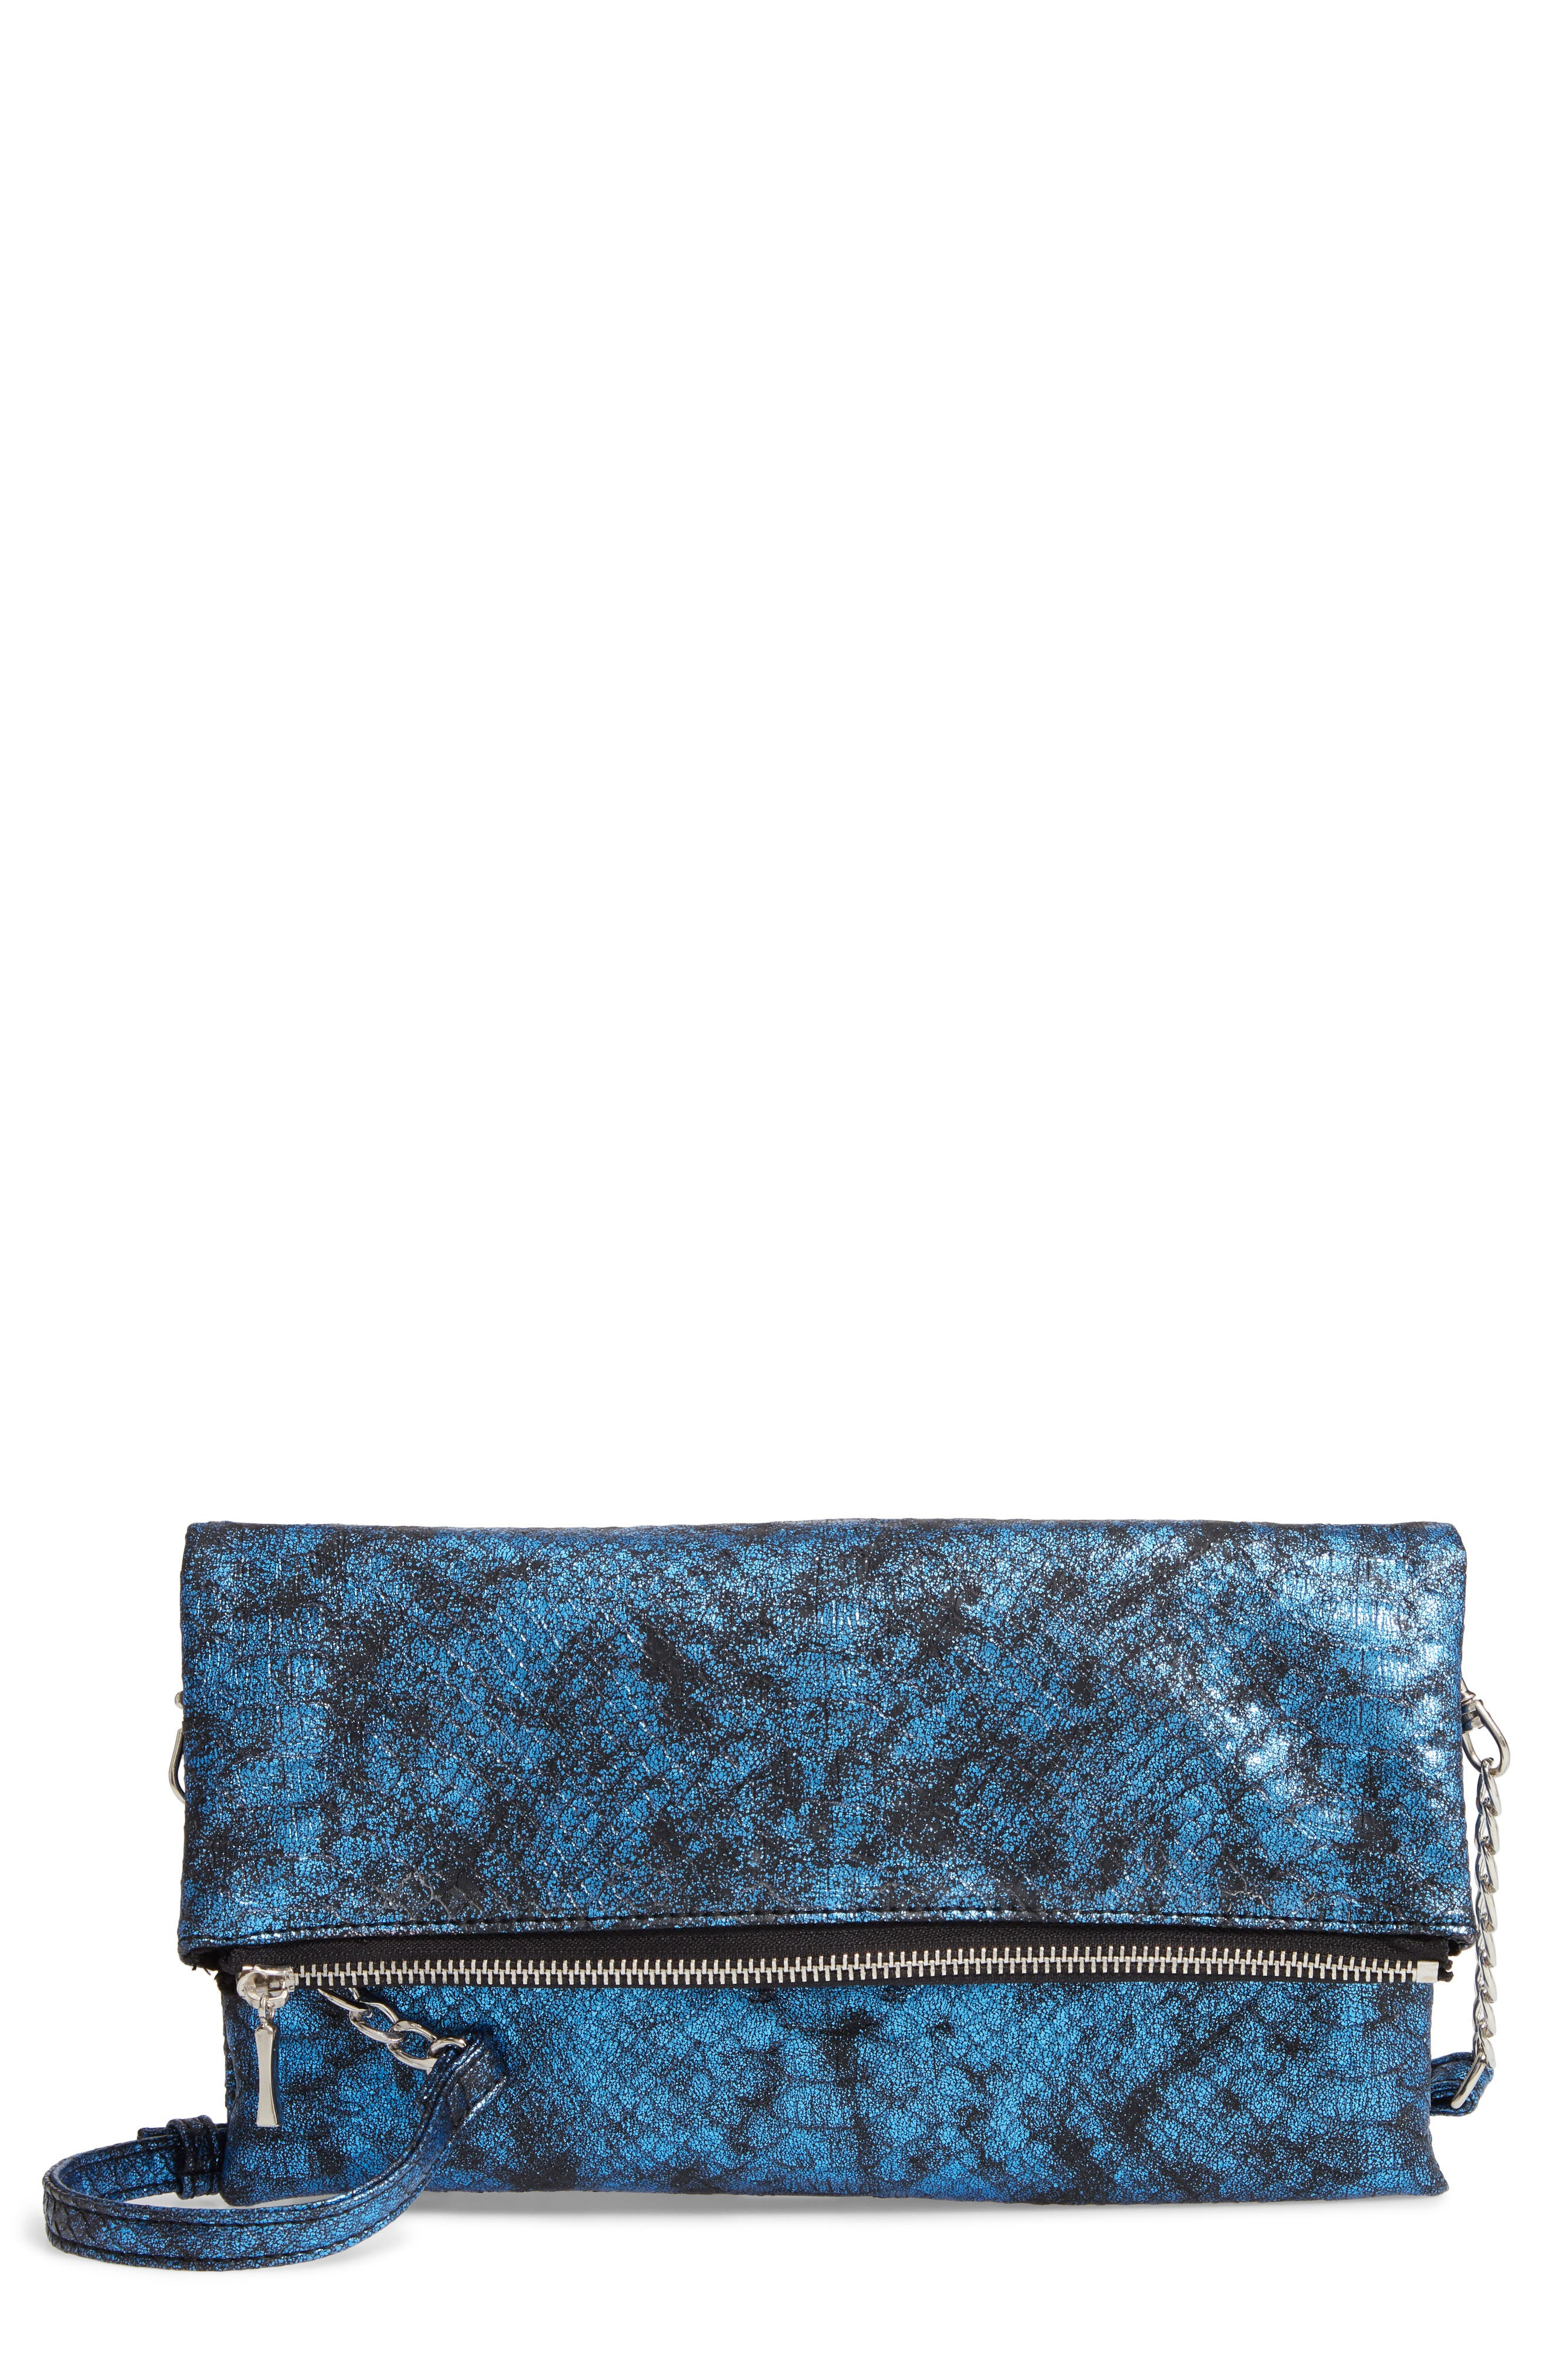 SOLE SOCIETY Snake Embossed Faux Leather Clutch, Main, color, 400